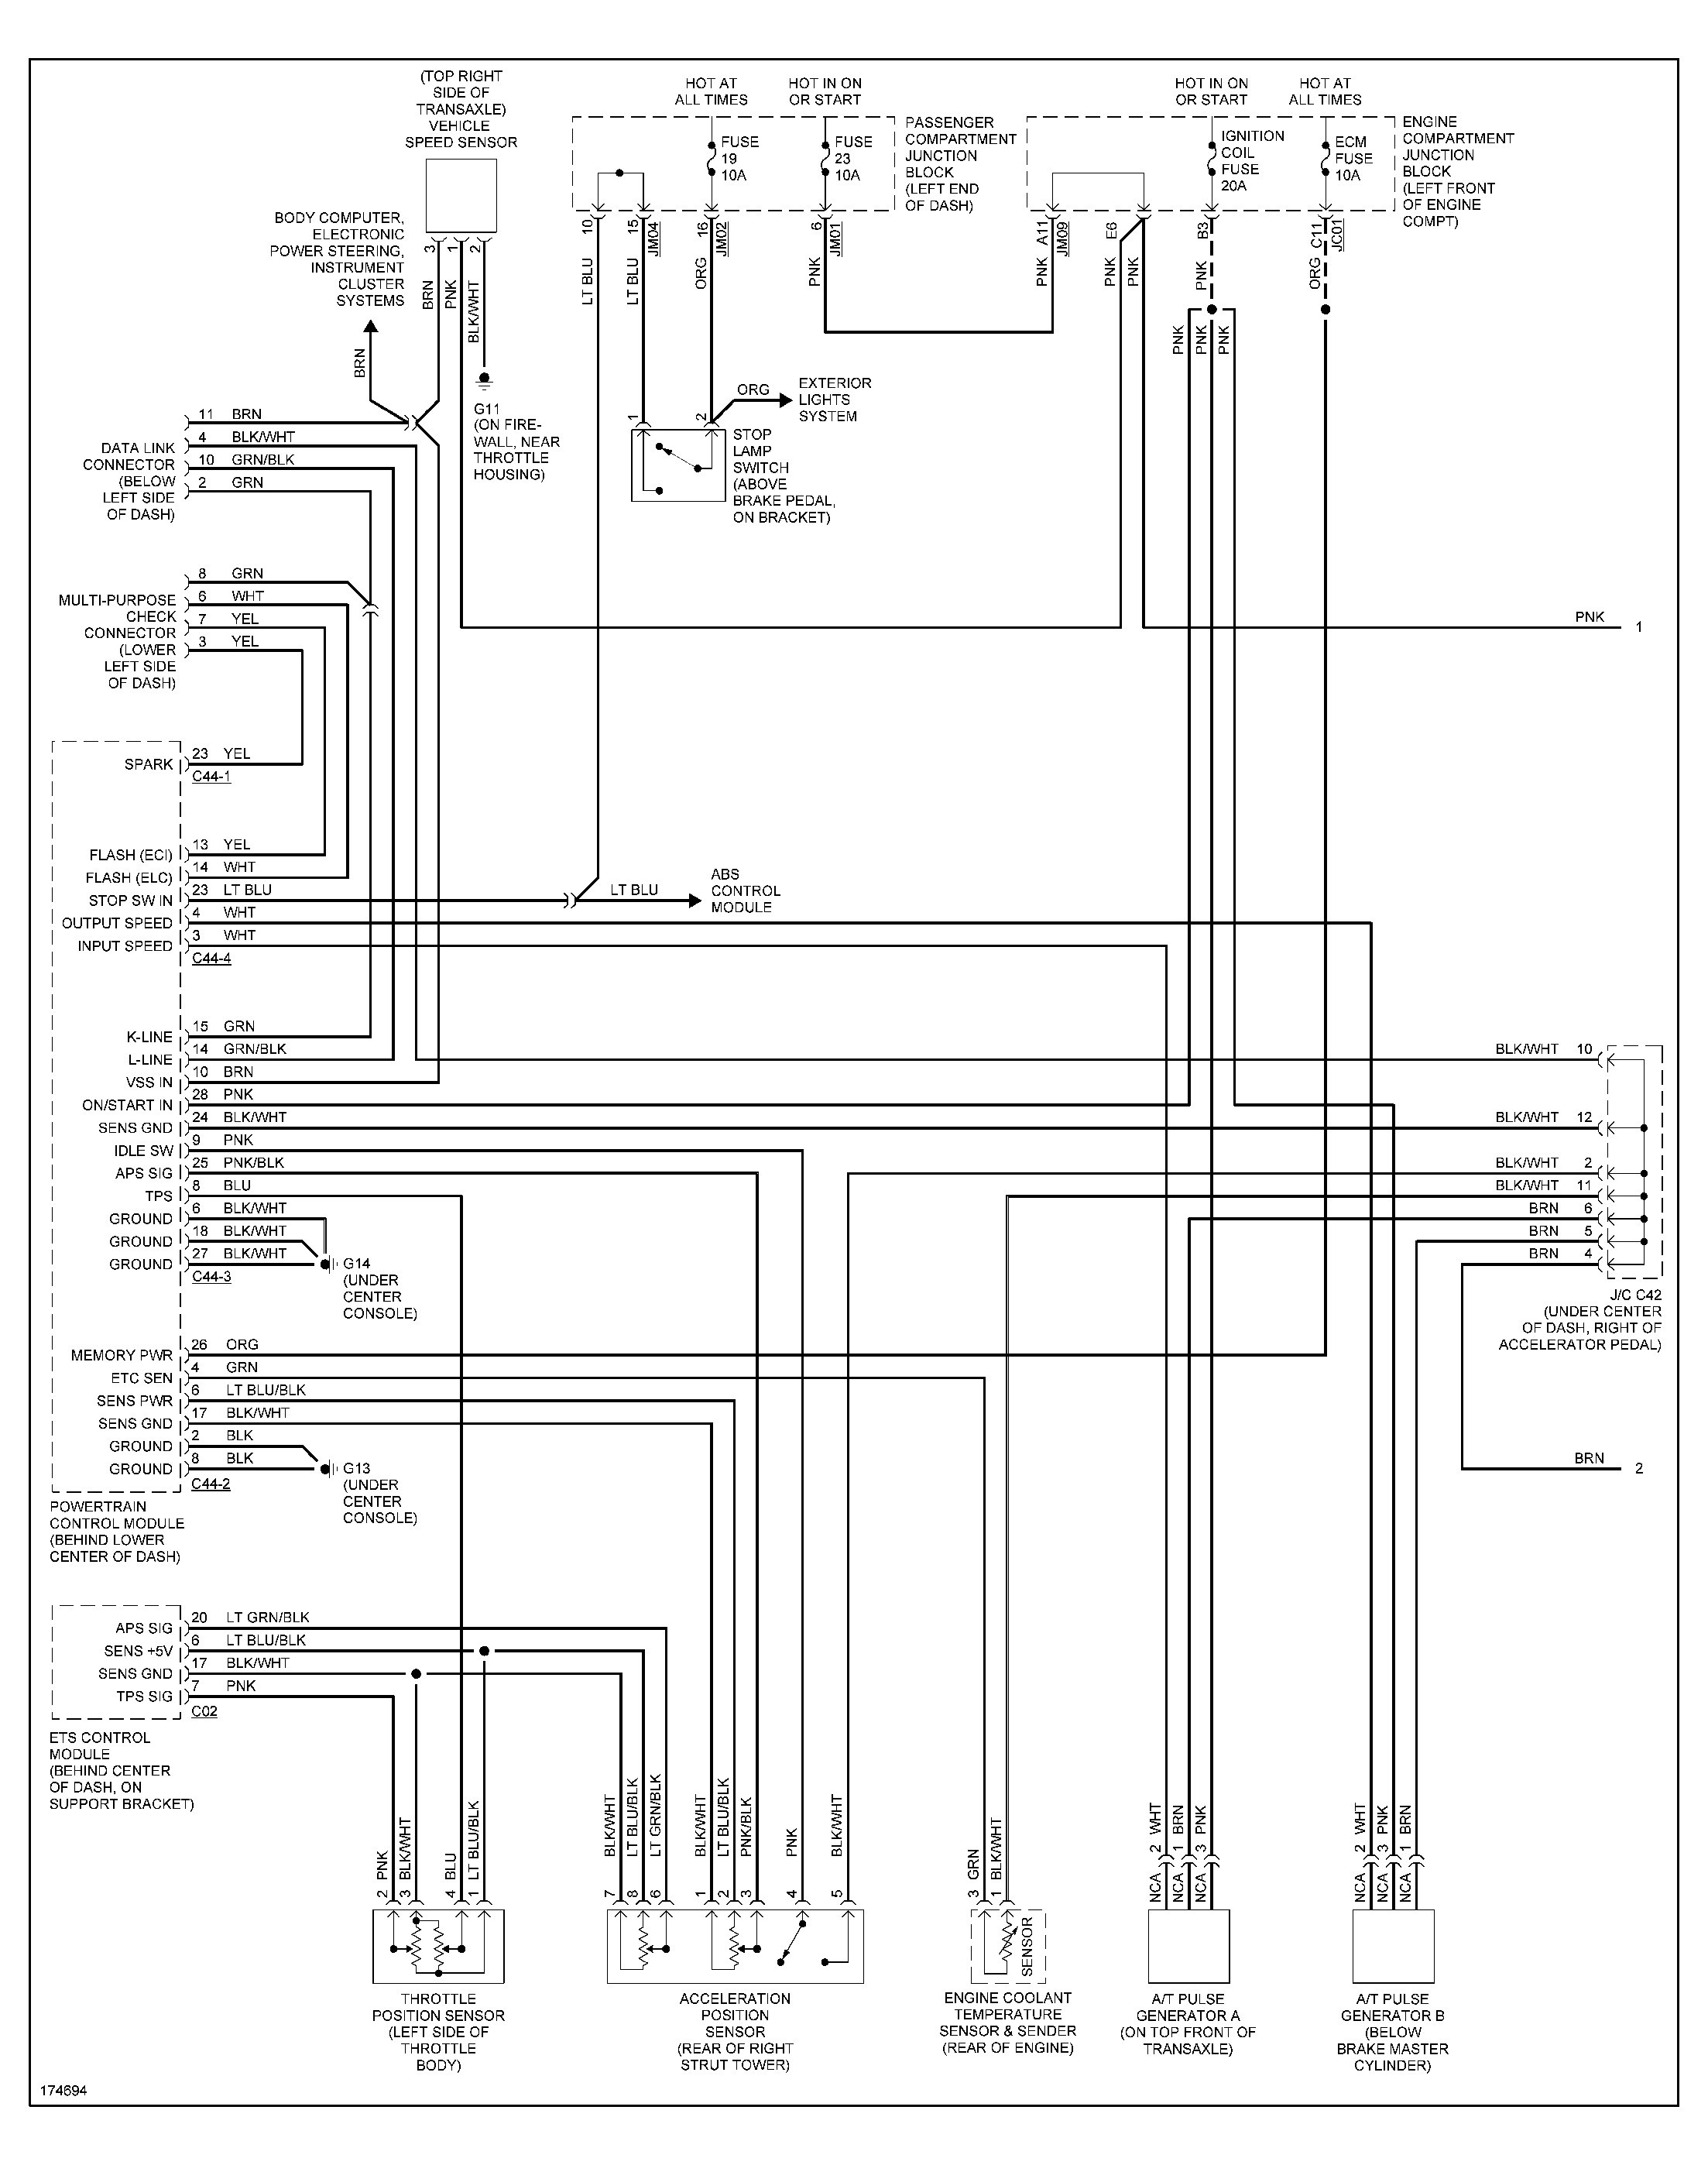 2004 Hyundai Santa Fe Engine Diagram Unique Hyundai Wiring Diagrams